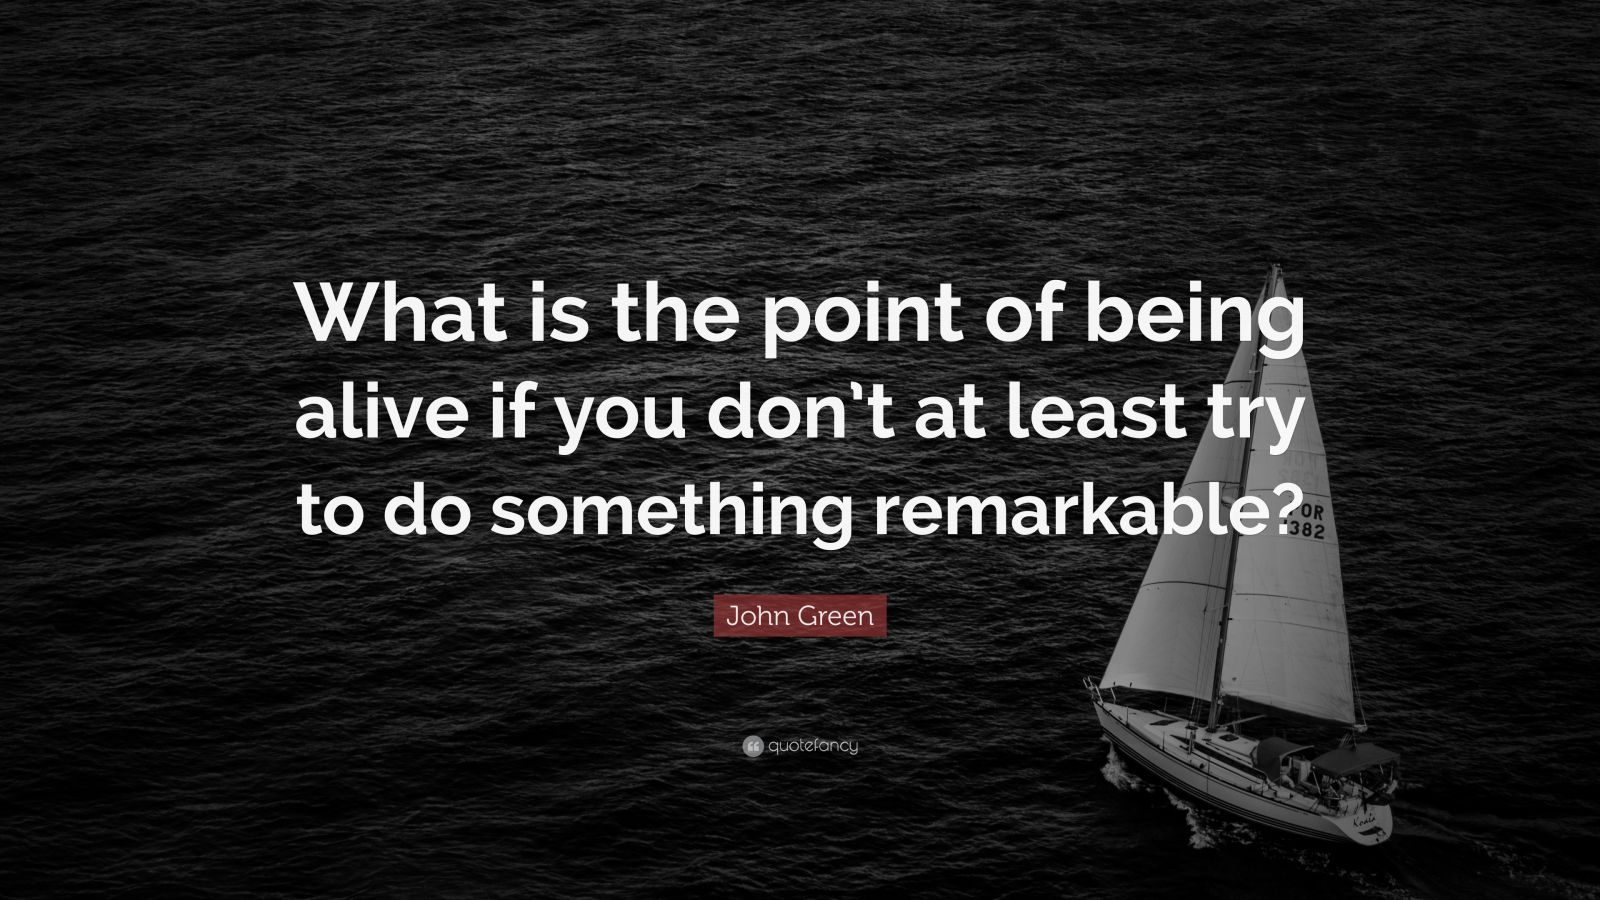 Quotes About Sailing And Life Adorable Life Quotes 100 Wallpapers  Quotefancy